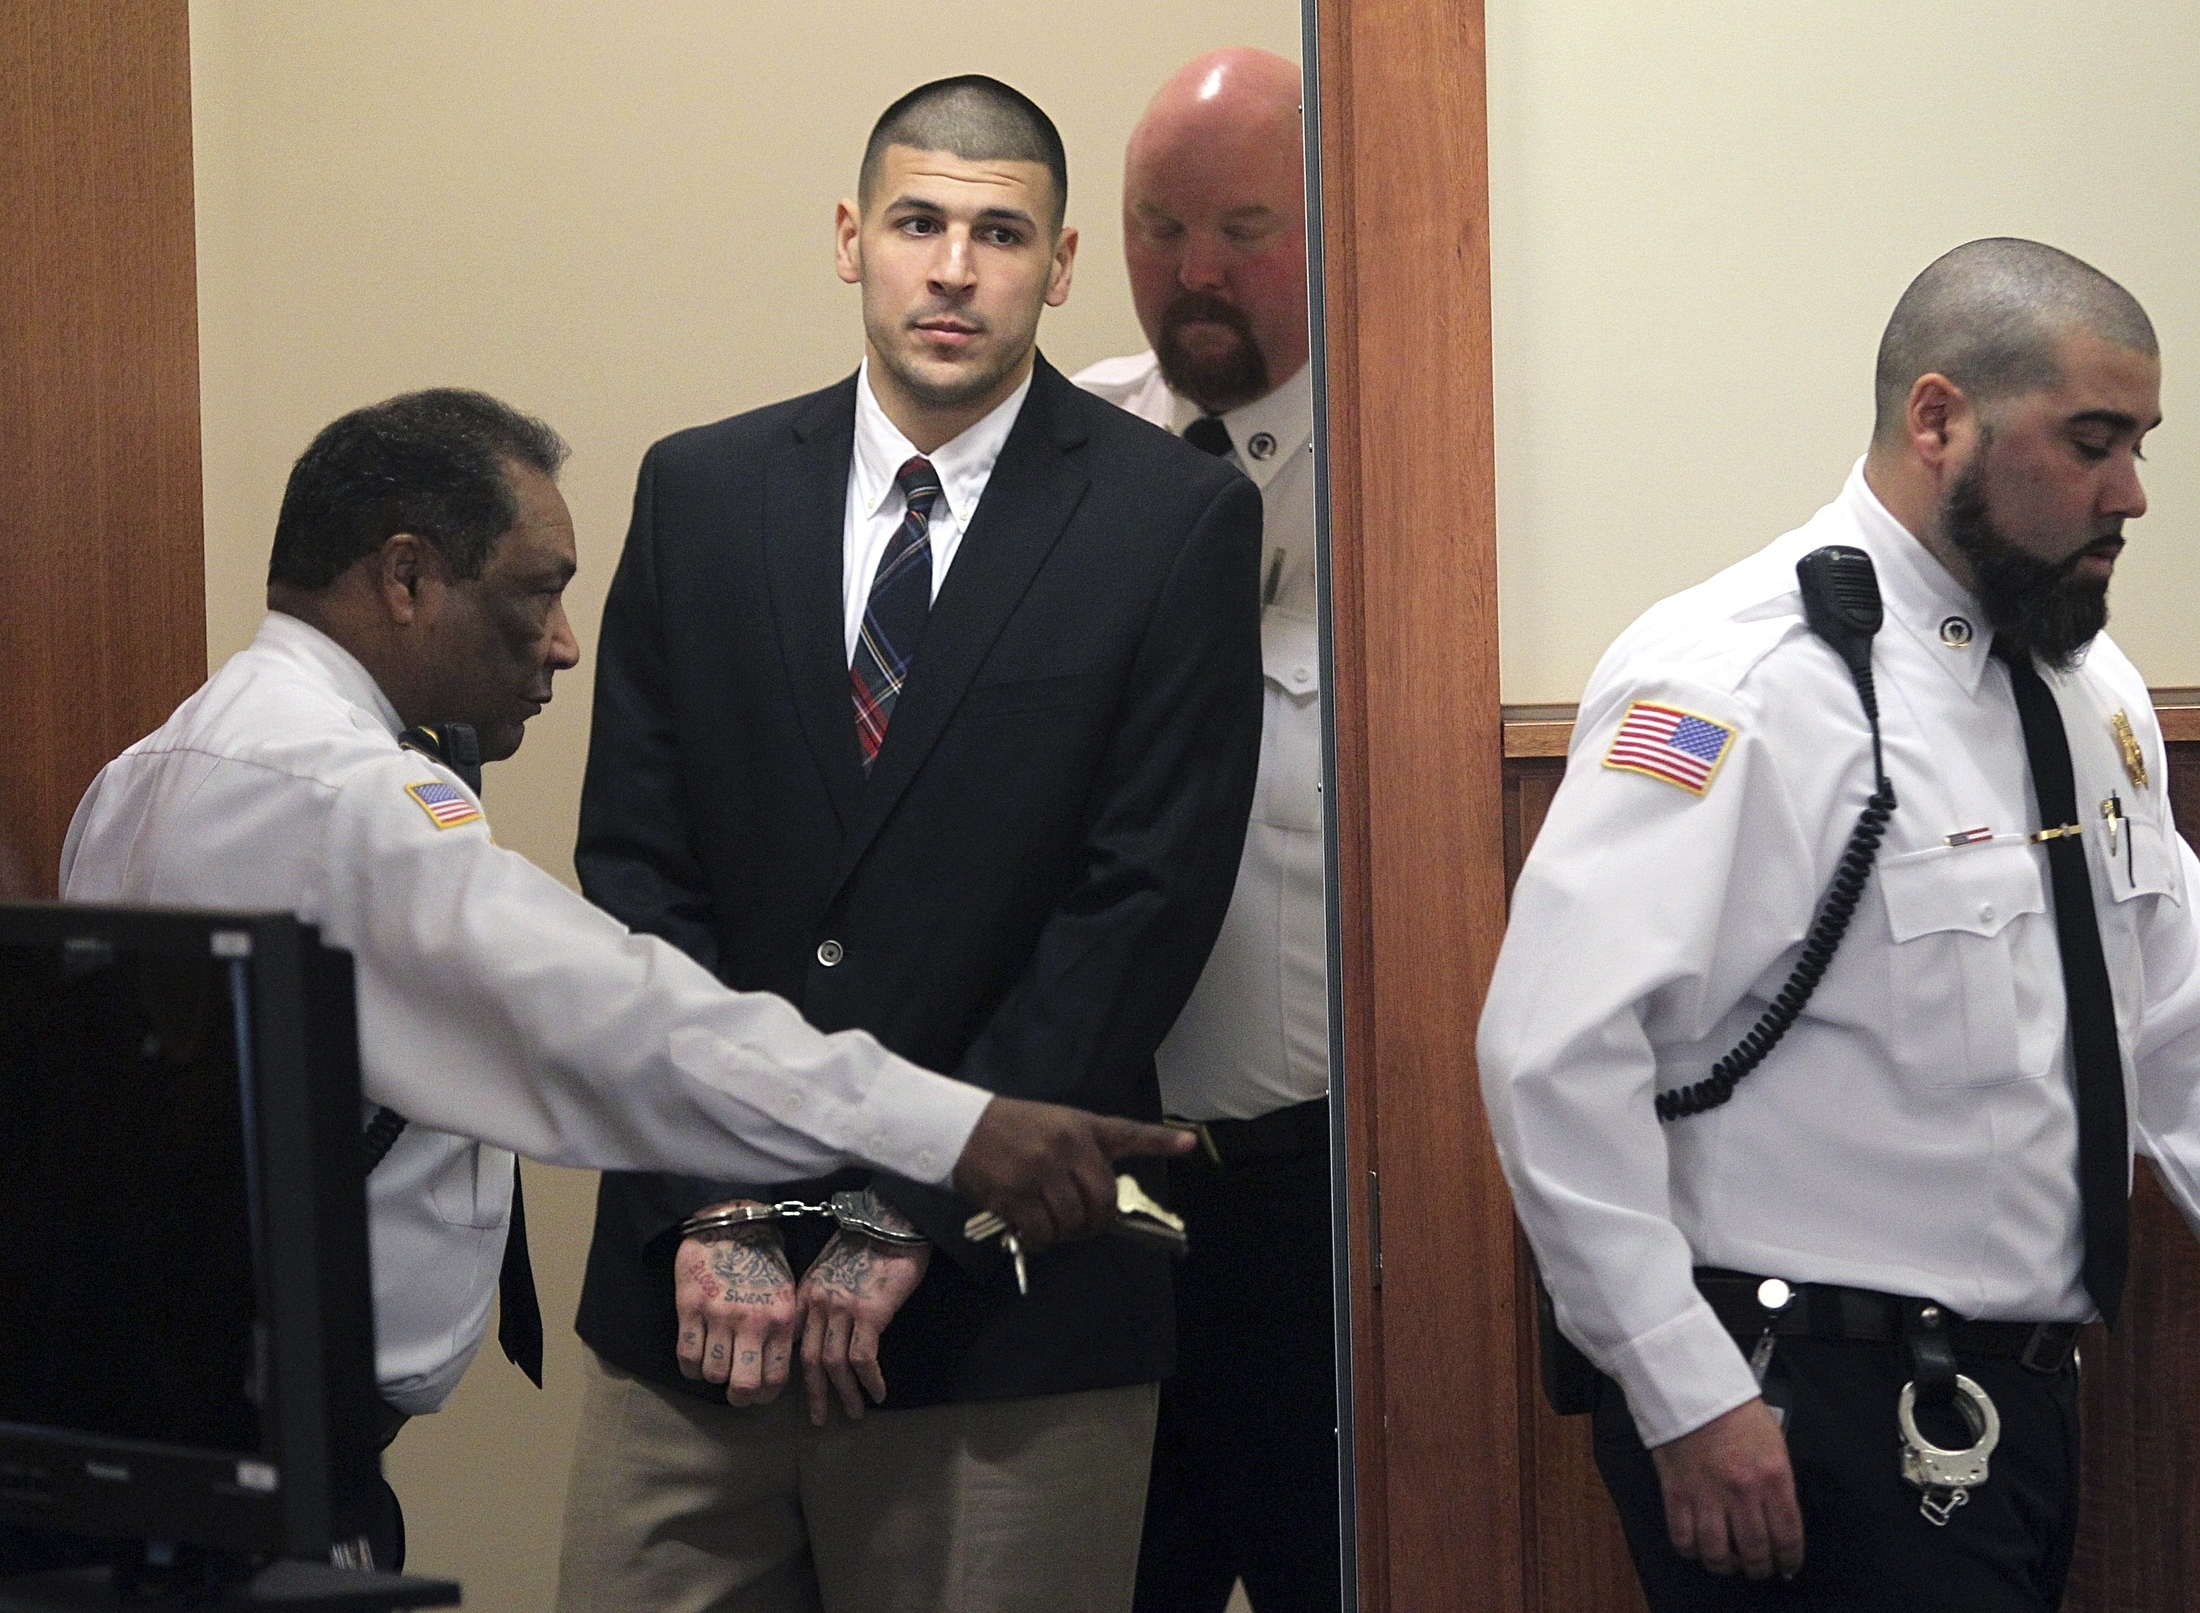 FILE - In this Monday, Dec. 23, 2013, file photo, former New England Patriots NFL football player Aaron Hernandez is led into his court appearance at the Fall River Superior Court in Fall River, Mass. Massachusetts prison officials said Hernandez hanged himself in his cell and was pronounced dead at a hospital early Wednesday, April 19, 2017. (Matt Stone/The Boston Herald via AP, Pool, File)